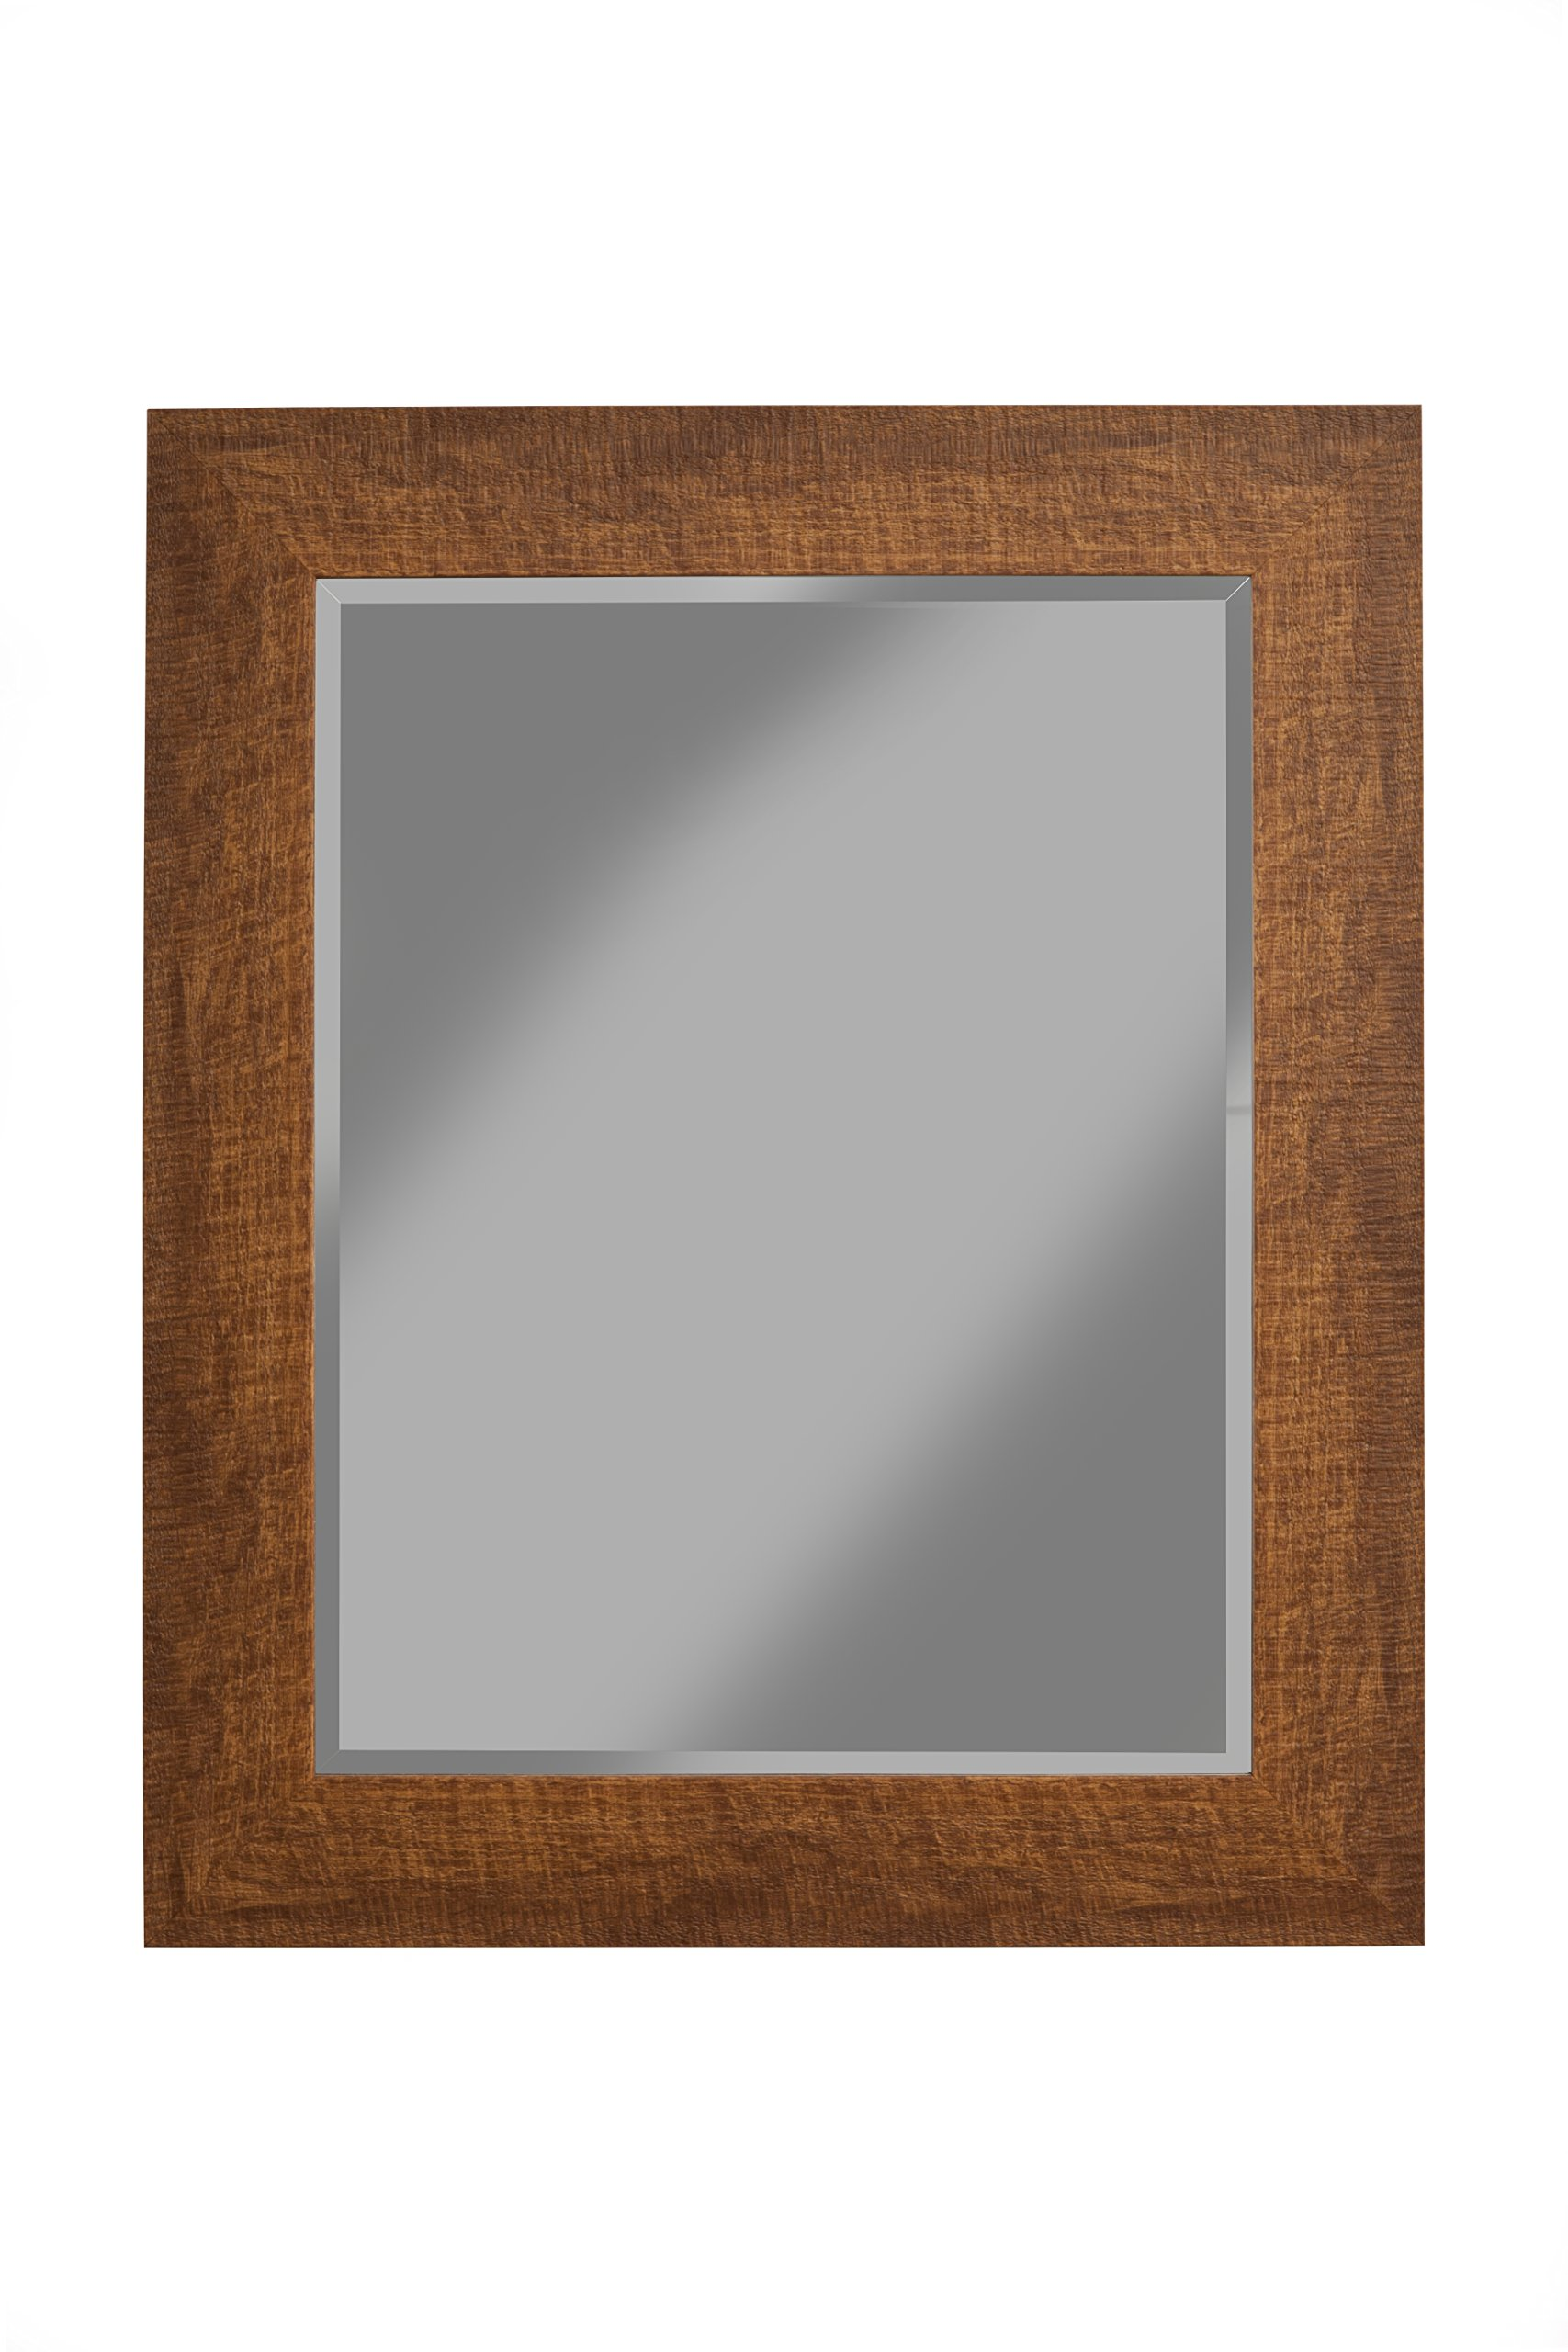 Sandberg Furniture 18717, 36'' x 30'' Wall Mirror, Honey Tobacco